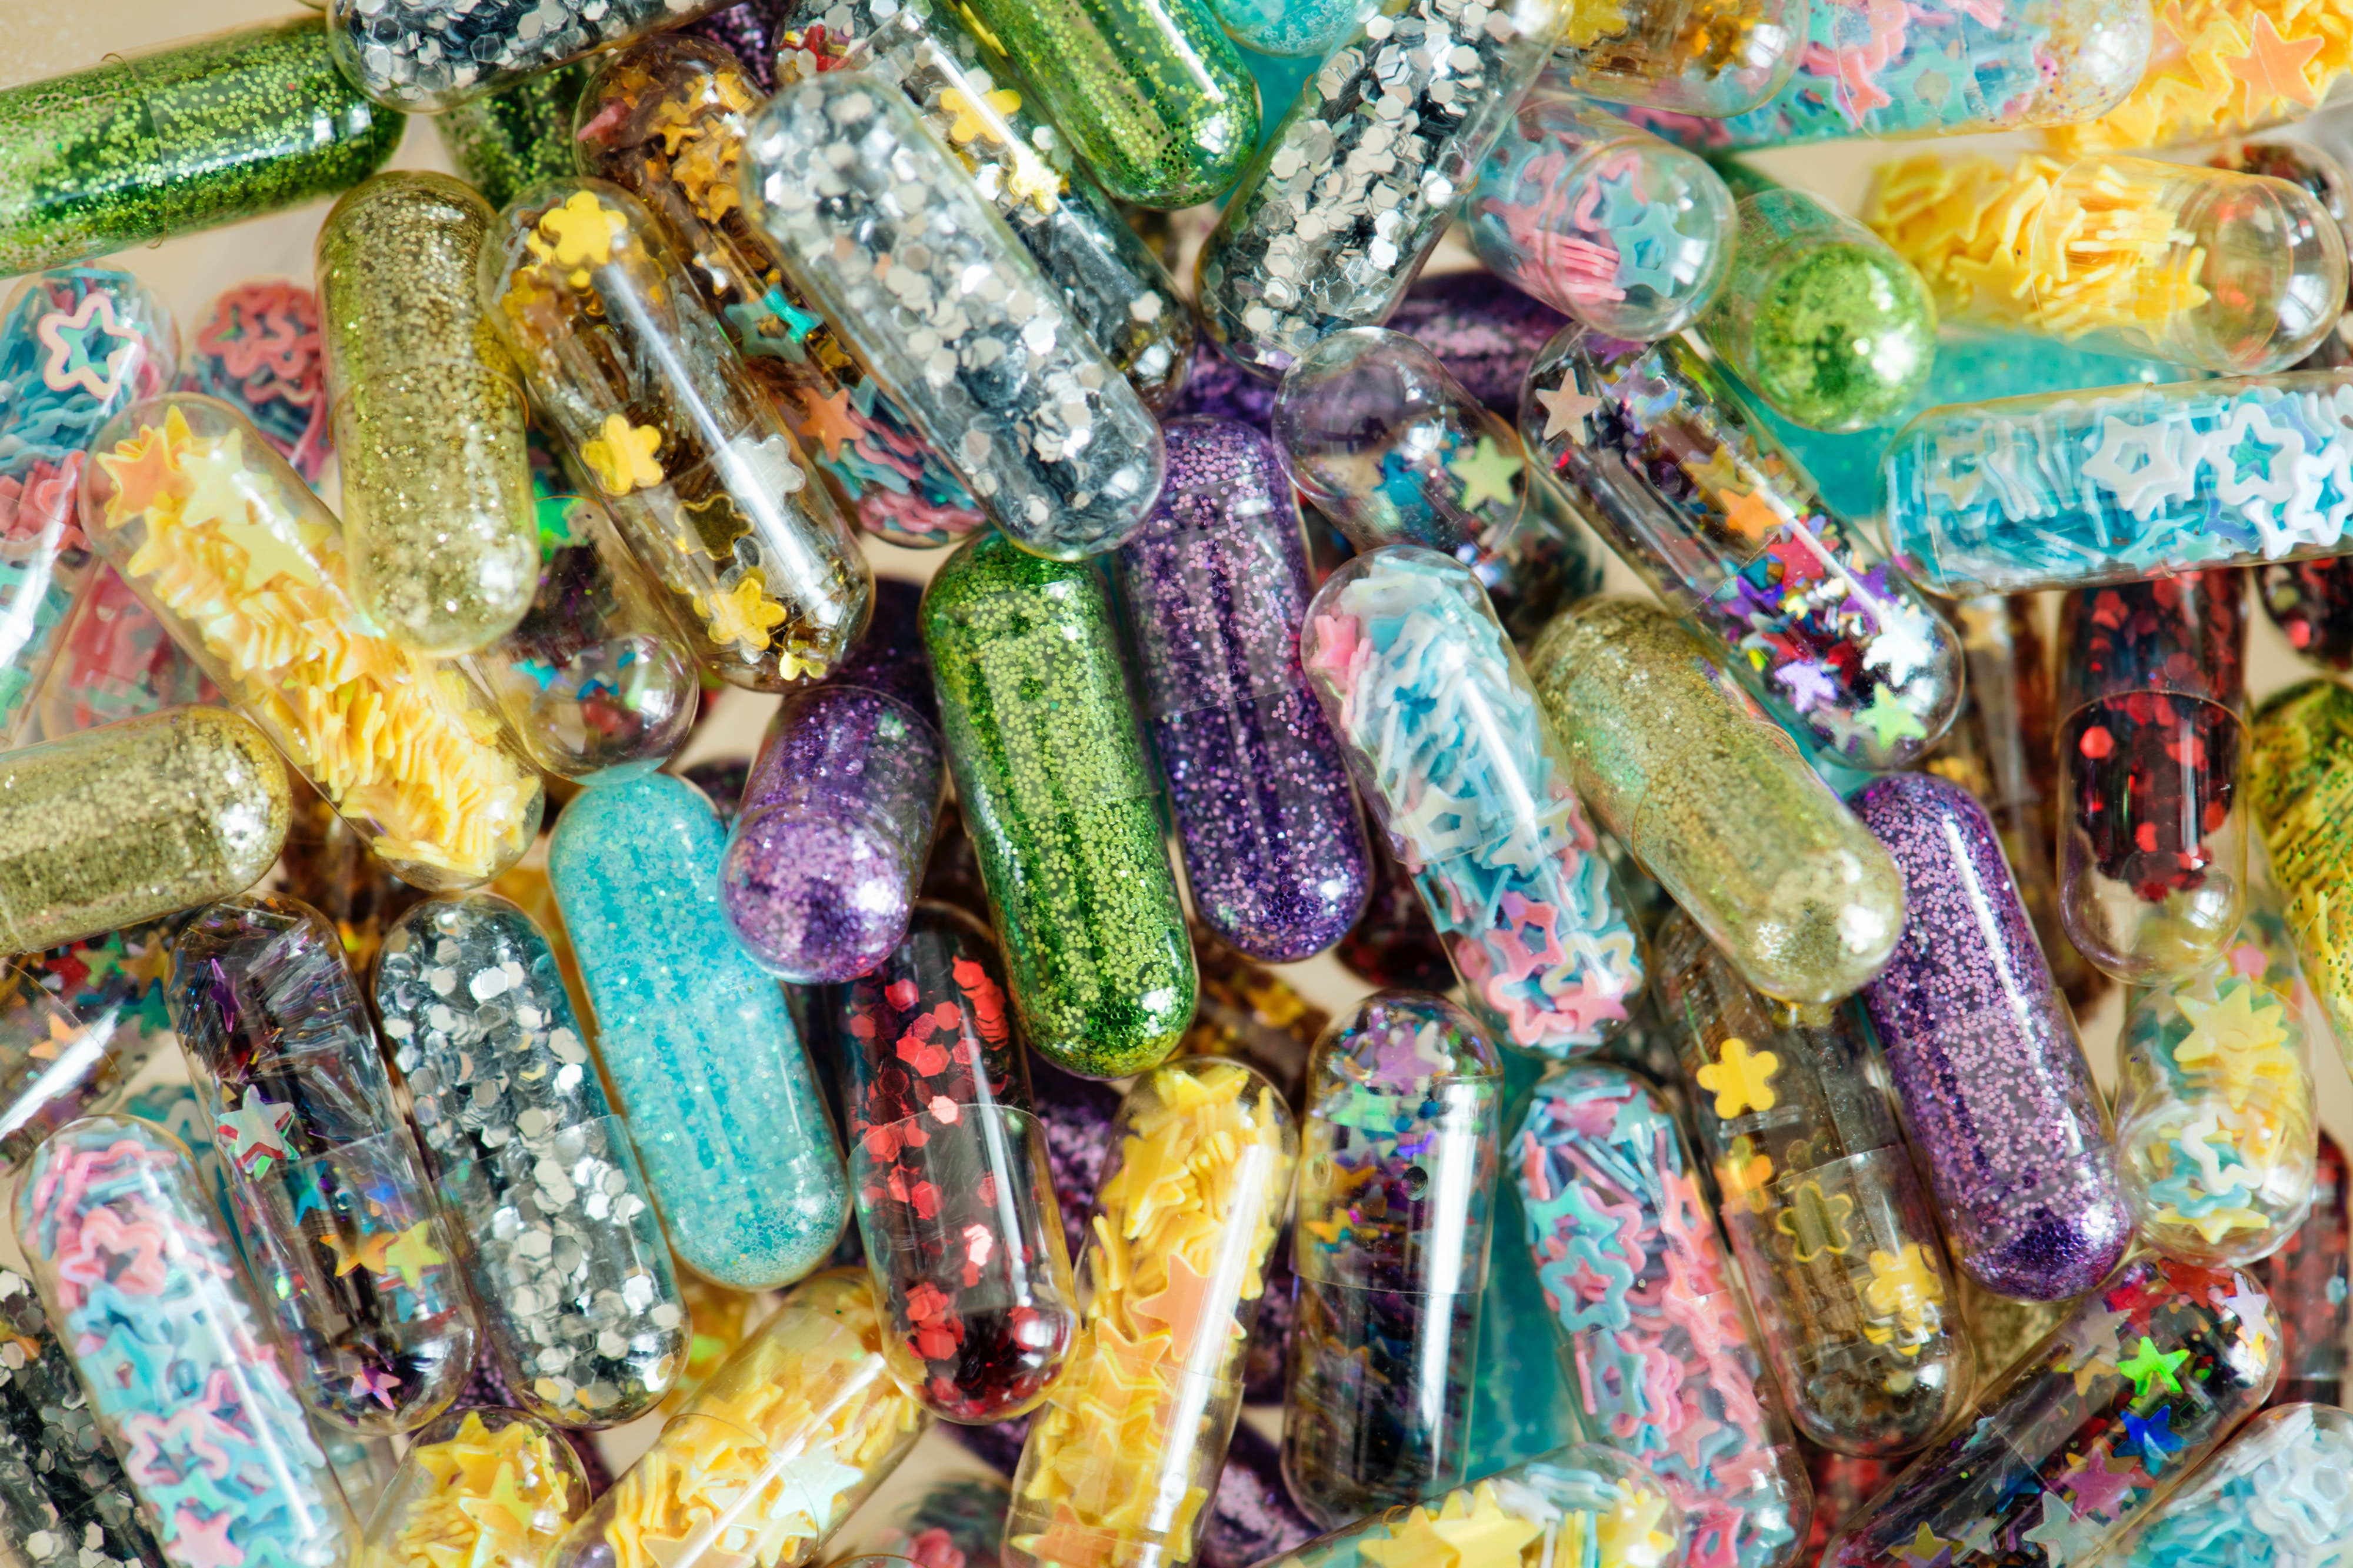 a pile of translucent pills filled with glitter and confeti